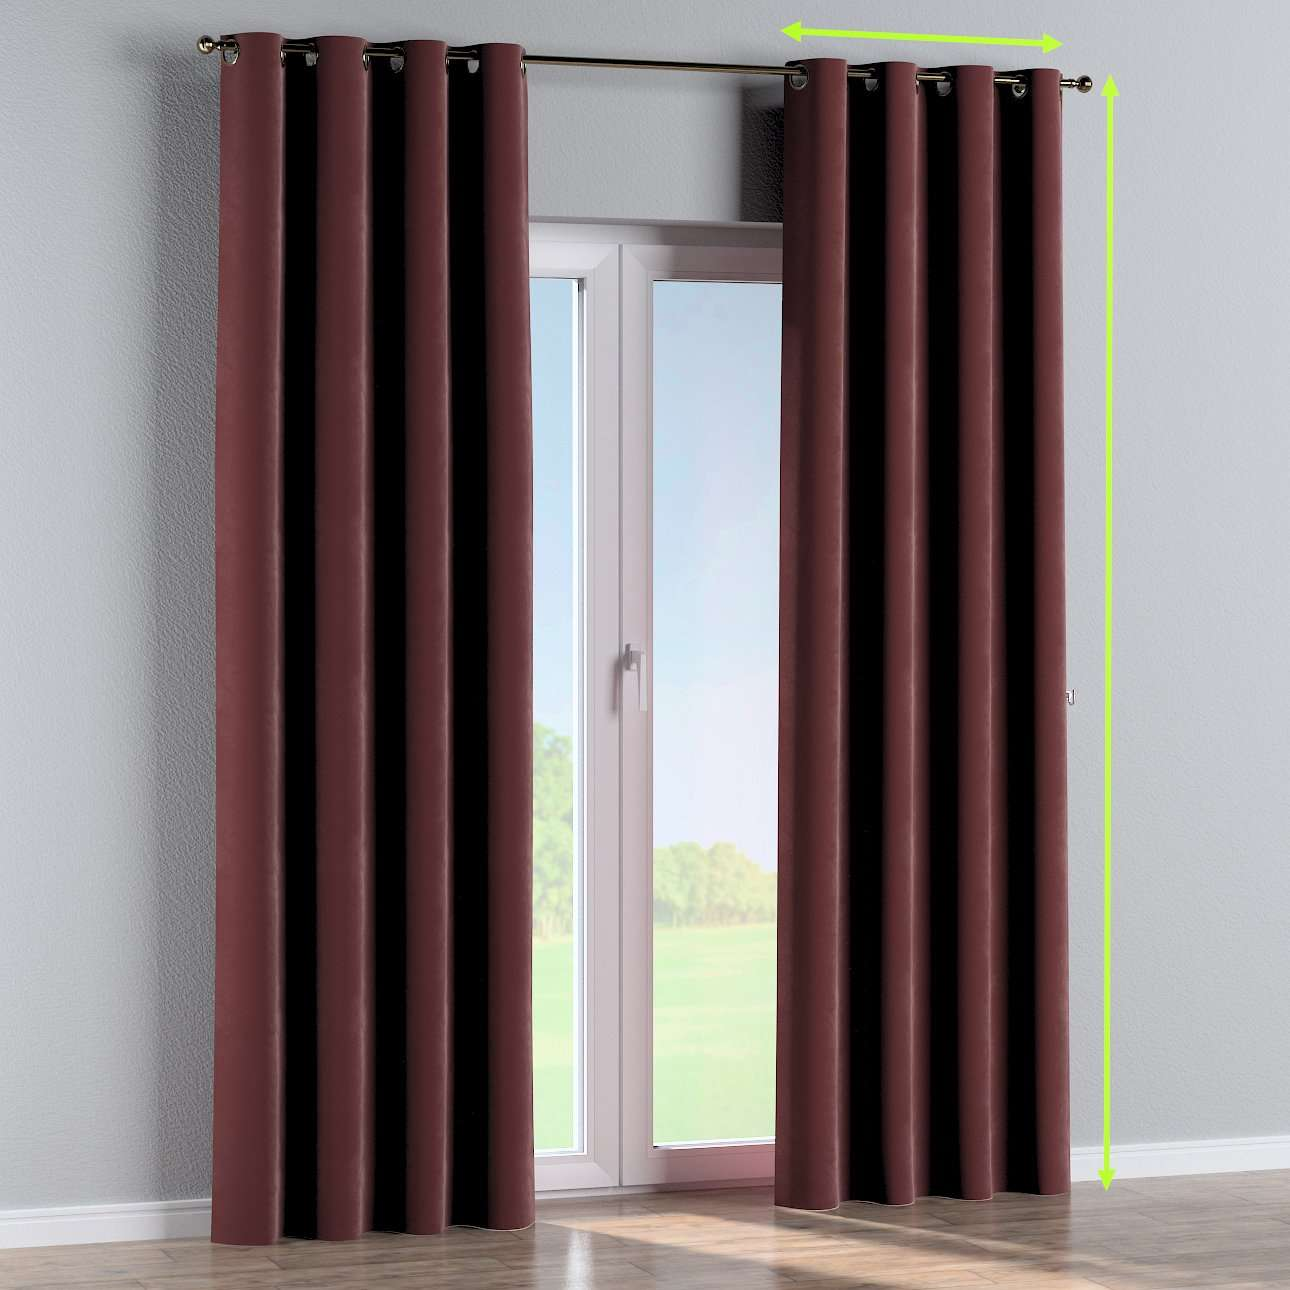 Eyelet curtain in collection Velvet, fabric: 704-26